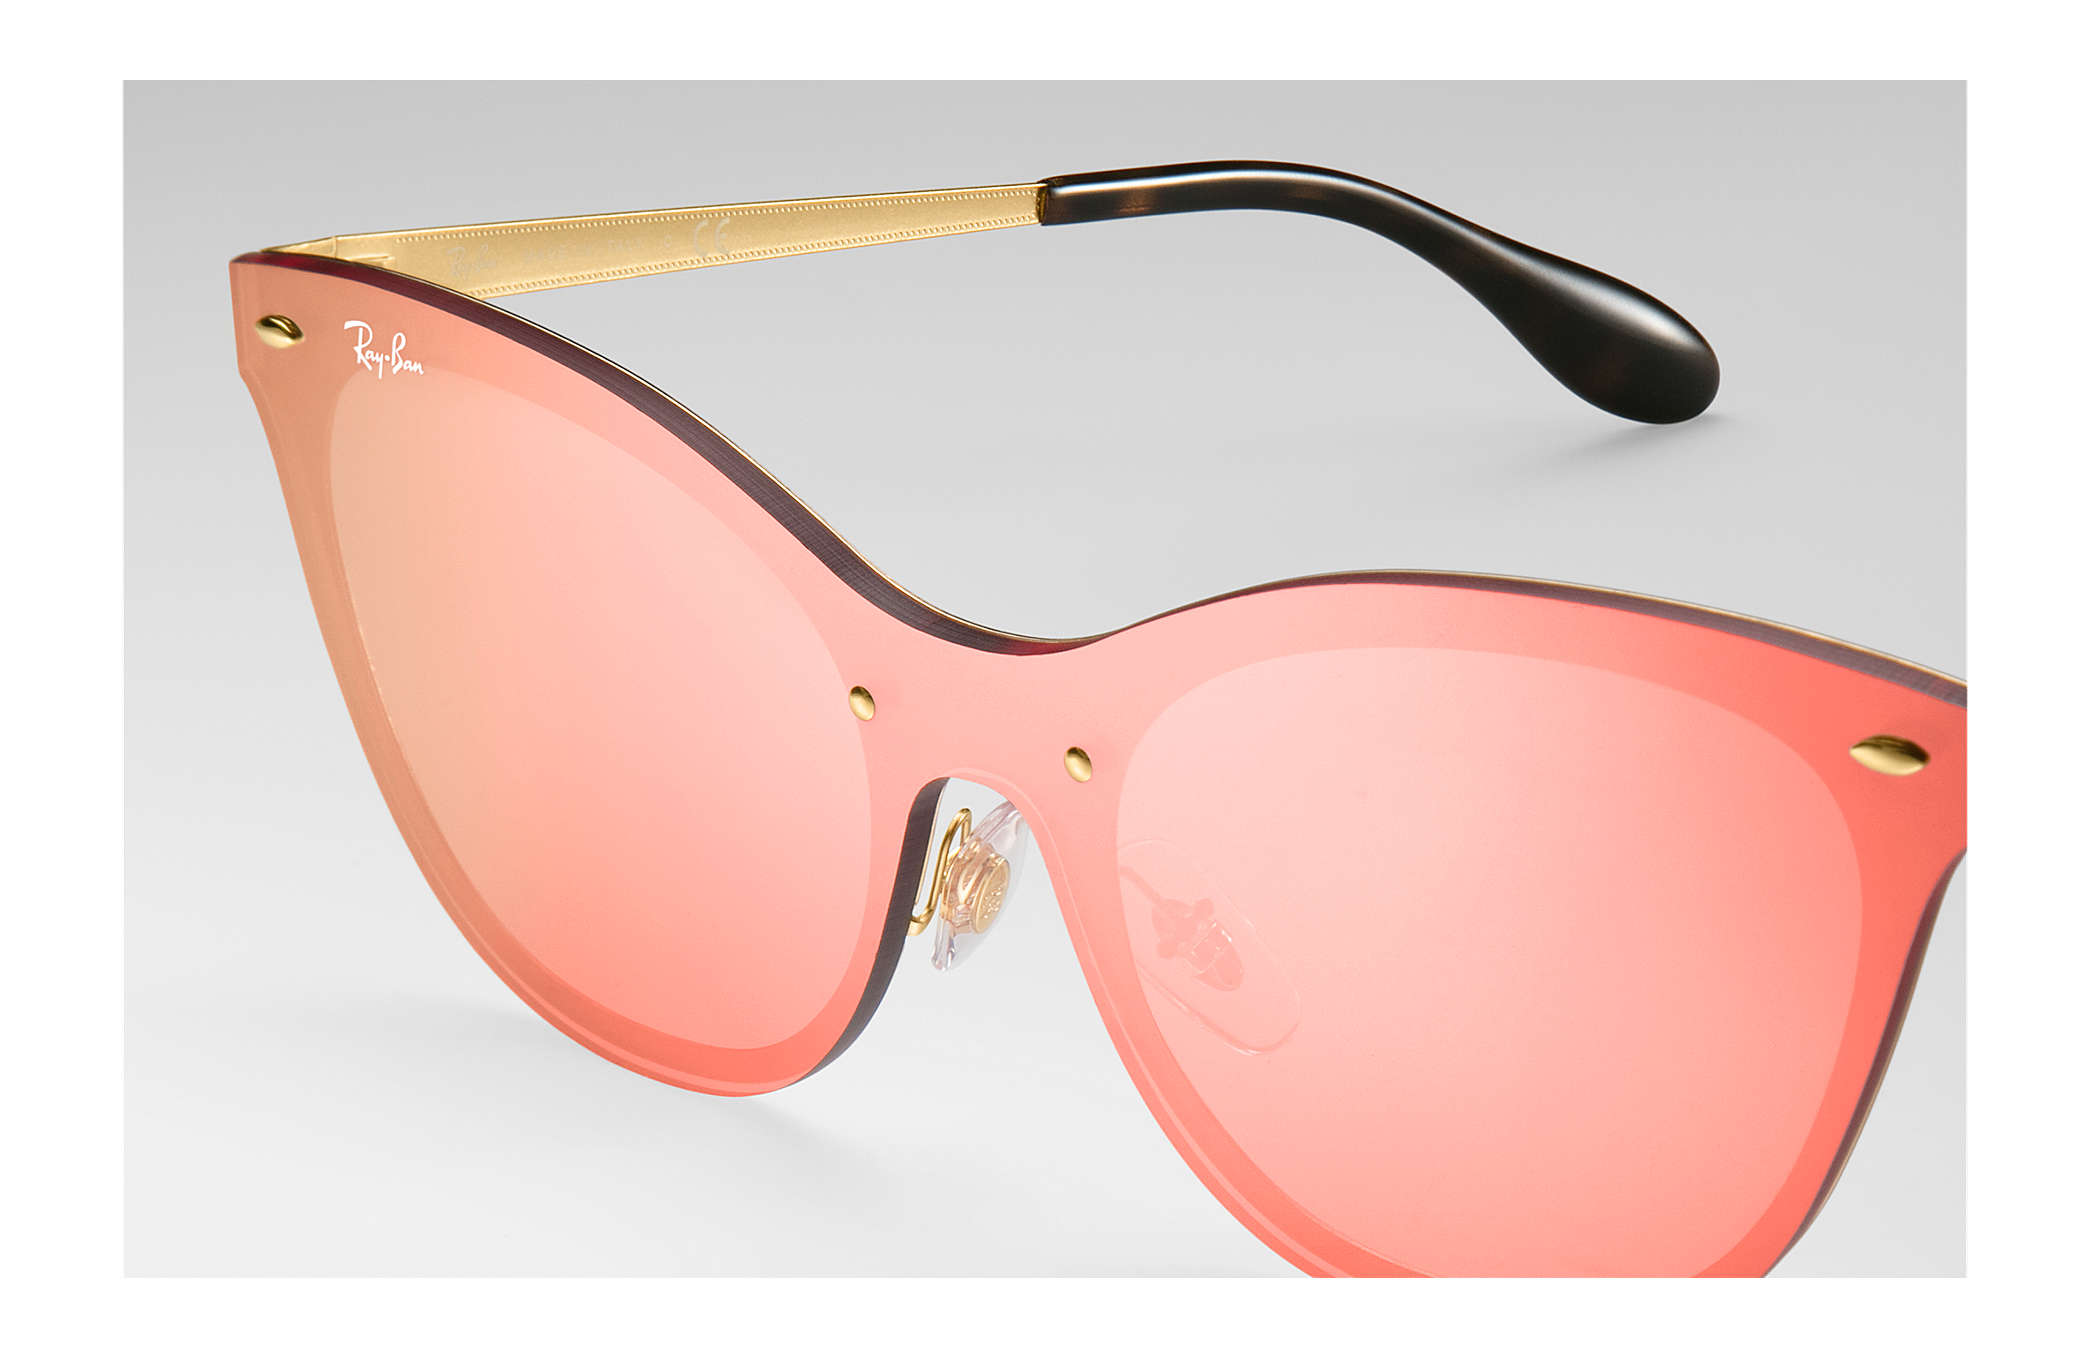 7540bc9764 Ray-Ban Blaze Cat Eye RB3580N Gold - Steel - Pink Lenses ...